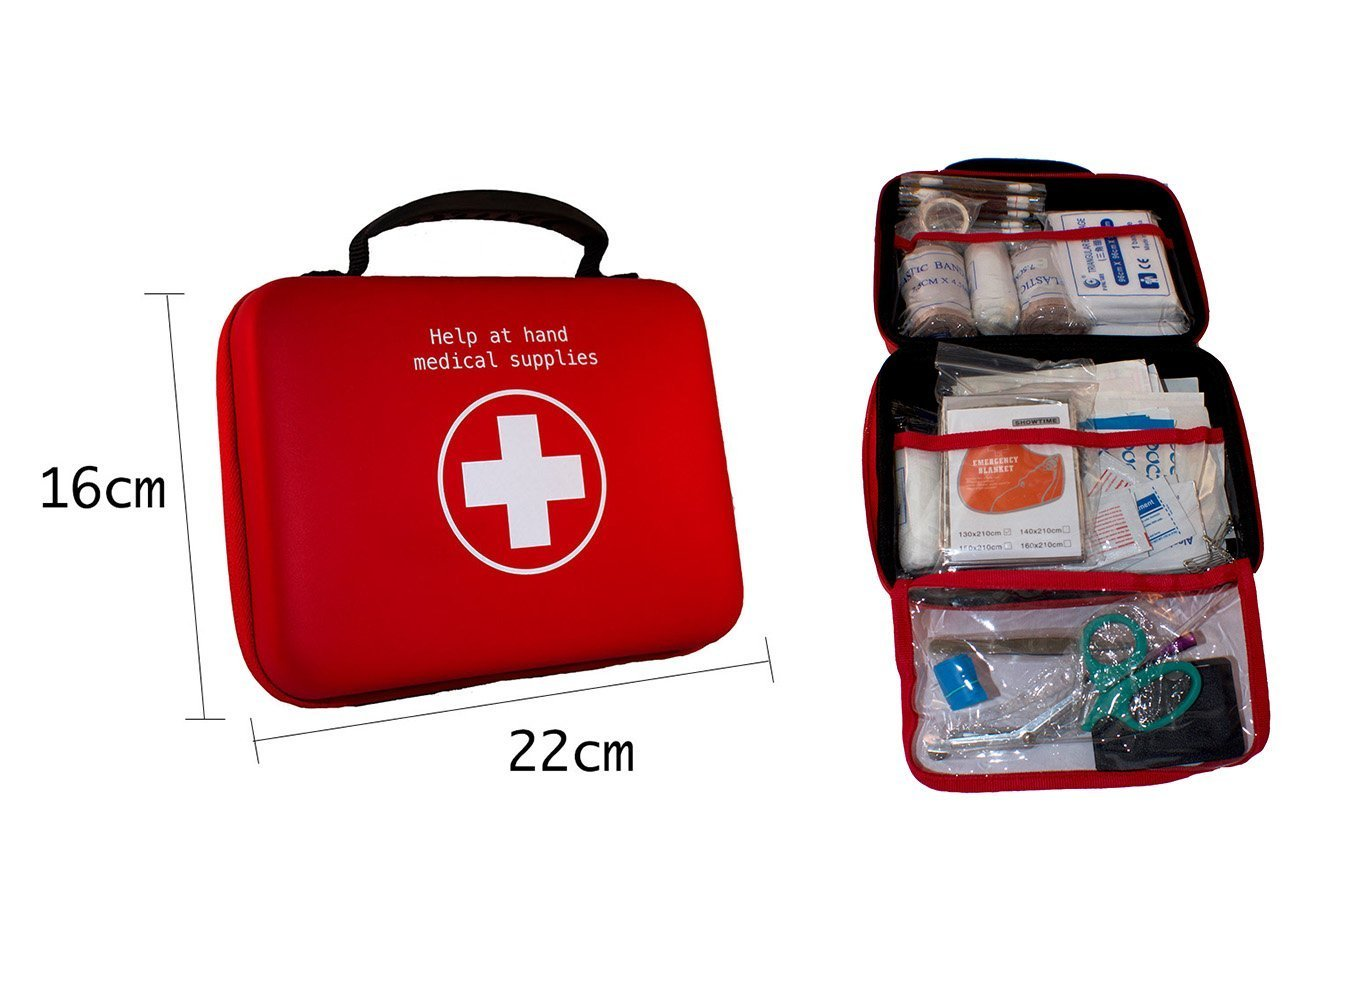 First Aid Kit by Help at Hand - 100 Piece All Purpose Complete Emergency Medical Supplies Bag for Adults, Kids, Teens, Students - Great for Car, Home, Camping, Hiking, Adventure, Survival & Outdoors